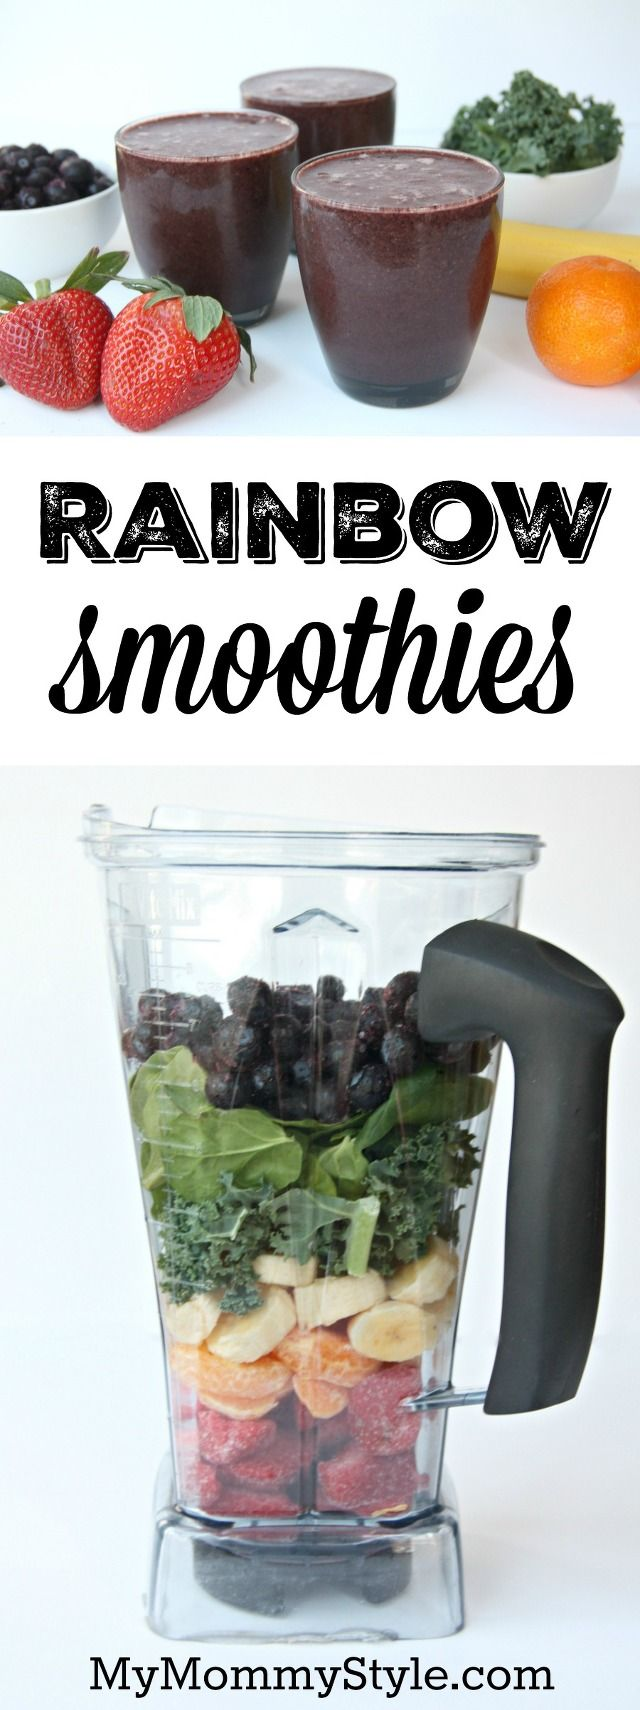 Healthy green smoothie recipe that uses fruits and veggies of all the colors of the rainbow. This would be a fun and healthy breakfast option for St. patrick's day